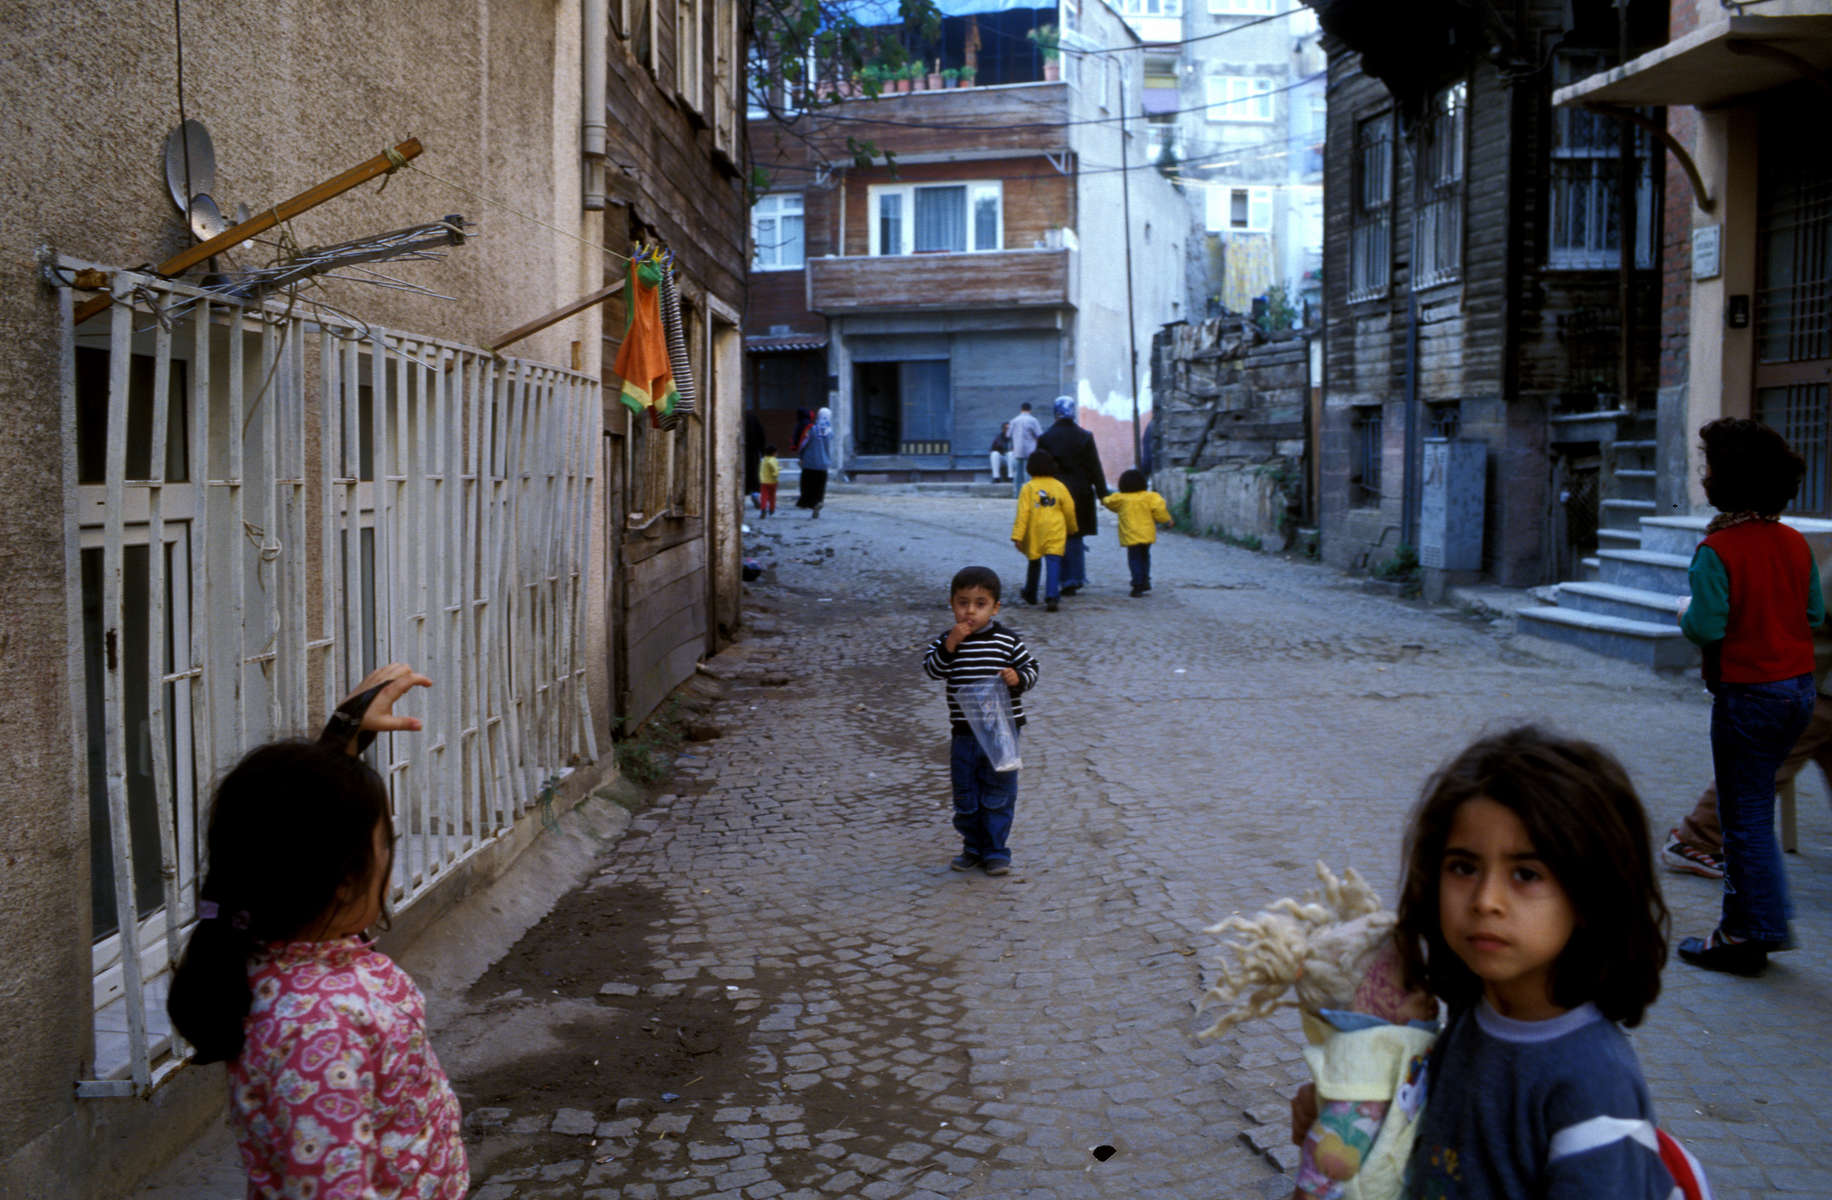 Children play in the streets of Zeyrek, a religiously conservative working-class neighborhood of Istanbul. Among the concerns voiced by Europeans who oppose allowing Turkey to join the European Union is the fact that Turkey\'s population of nearly 70 million -- which is almost entirely Muslim -- is growing at a rapid 2.3 percent per year. In December 2004, the EU agreed to begin accession talks with Turkey in October 2005. Turkey\'s membership in the EU would create more mosque-going Muslims in Europe than church-attending Protestants.